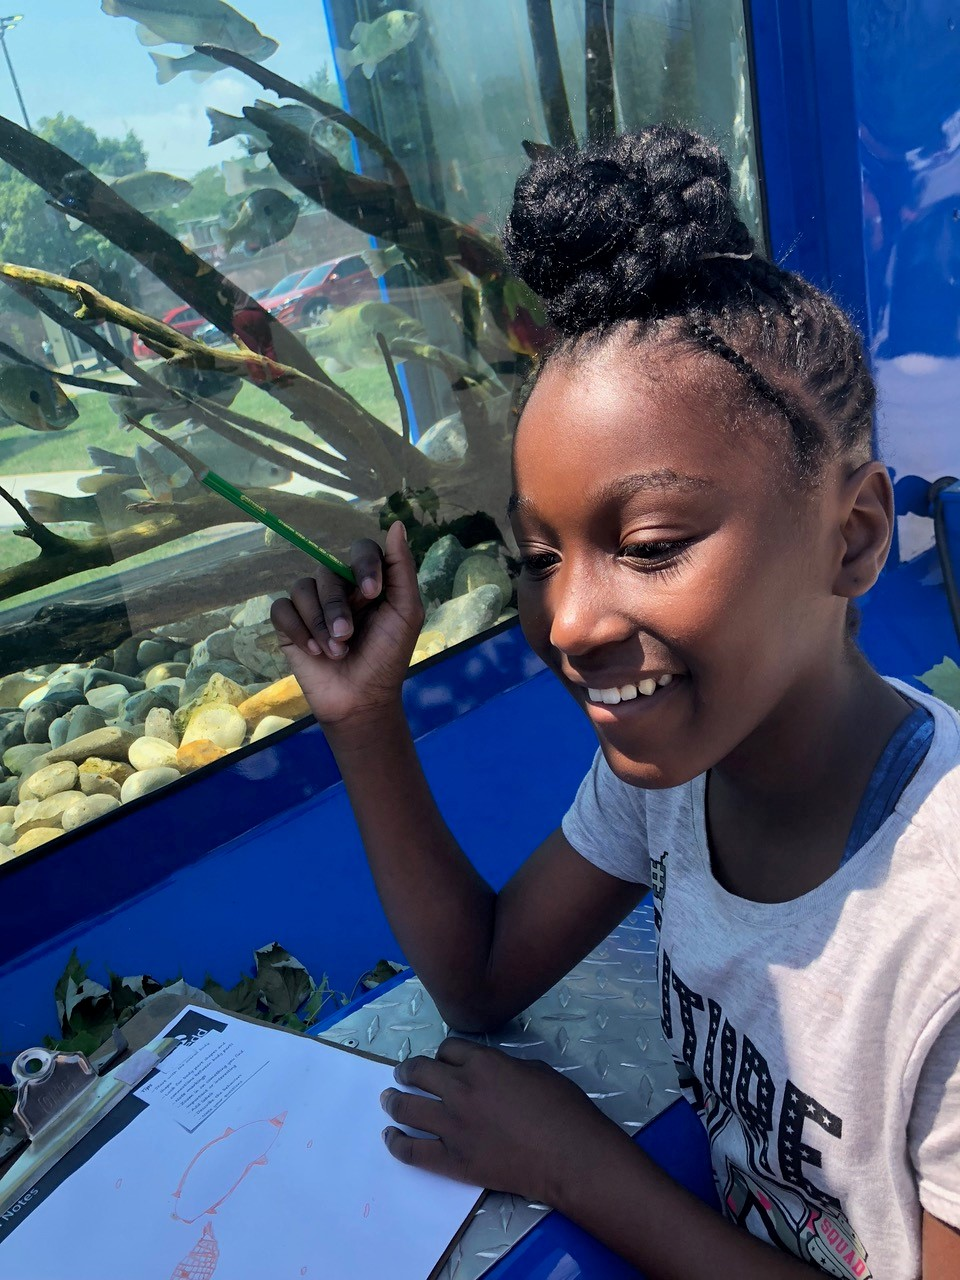 Justice Stipe, 10, stares at the fish long and hard as she draws them and notes their behavior, for one of the children's activities. (Linda Paul/WBEZ)